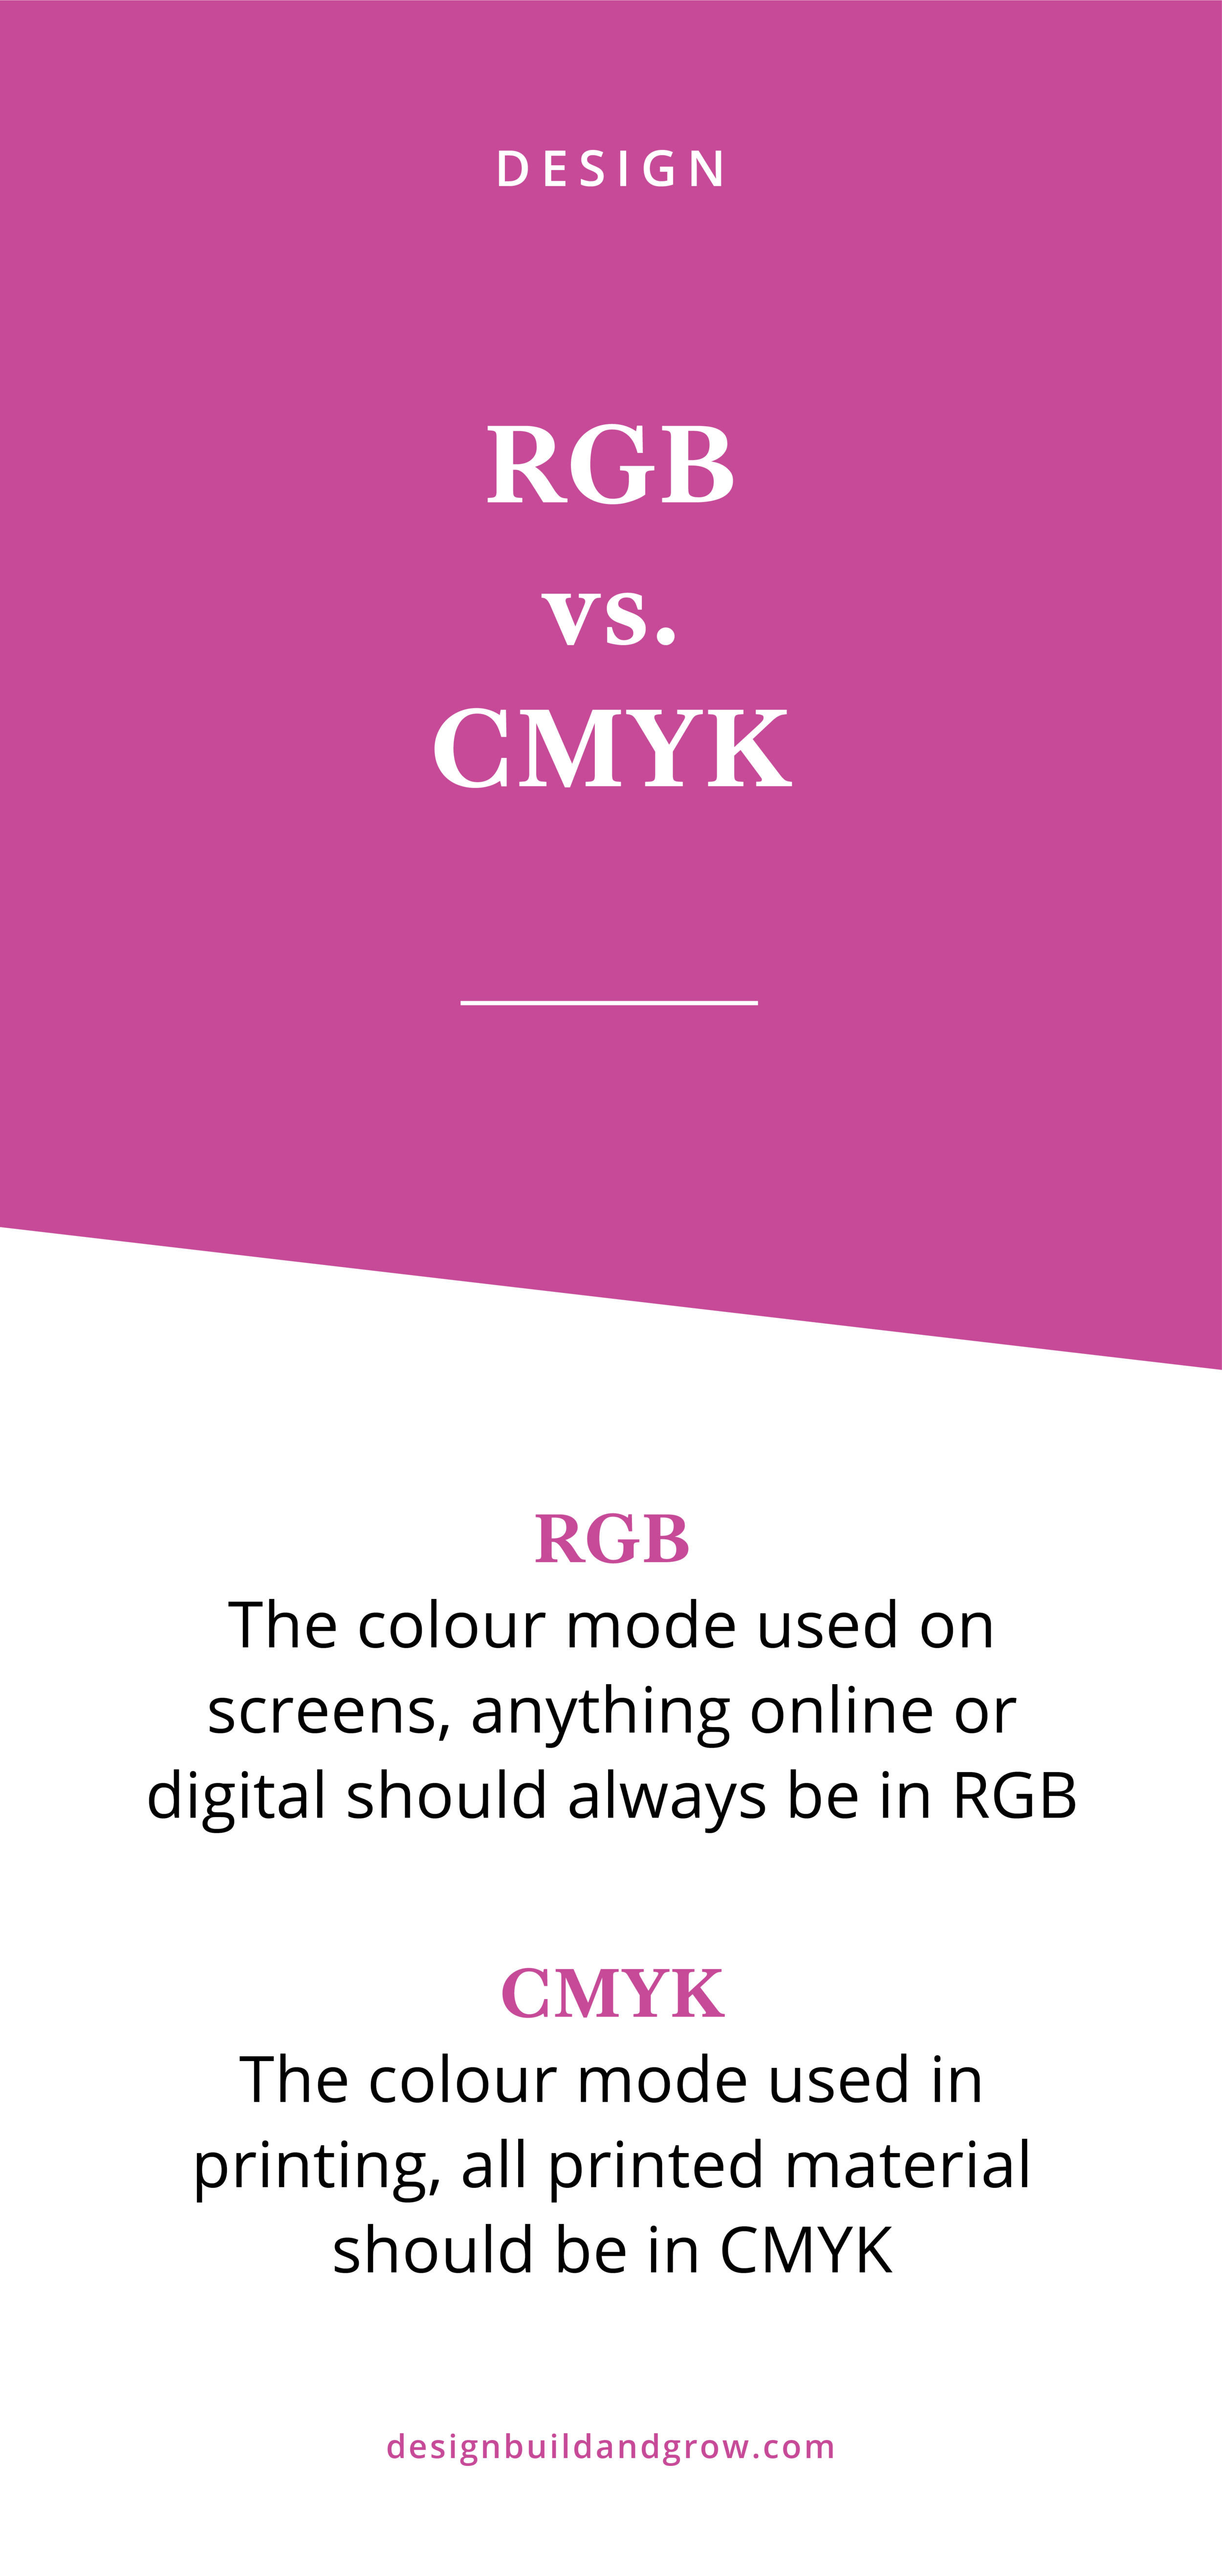 The difference between the colour modes RGB and CMYK